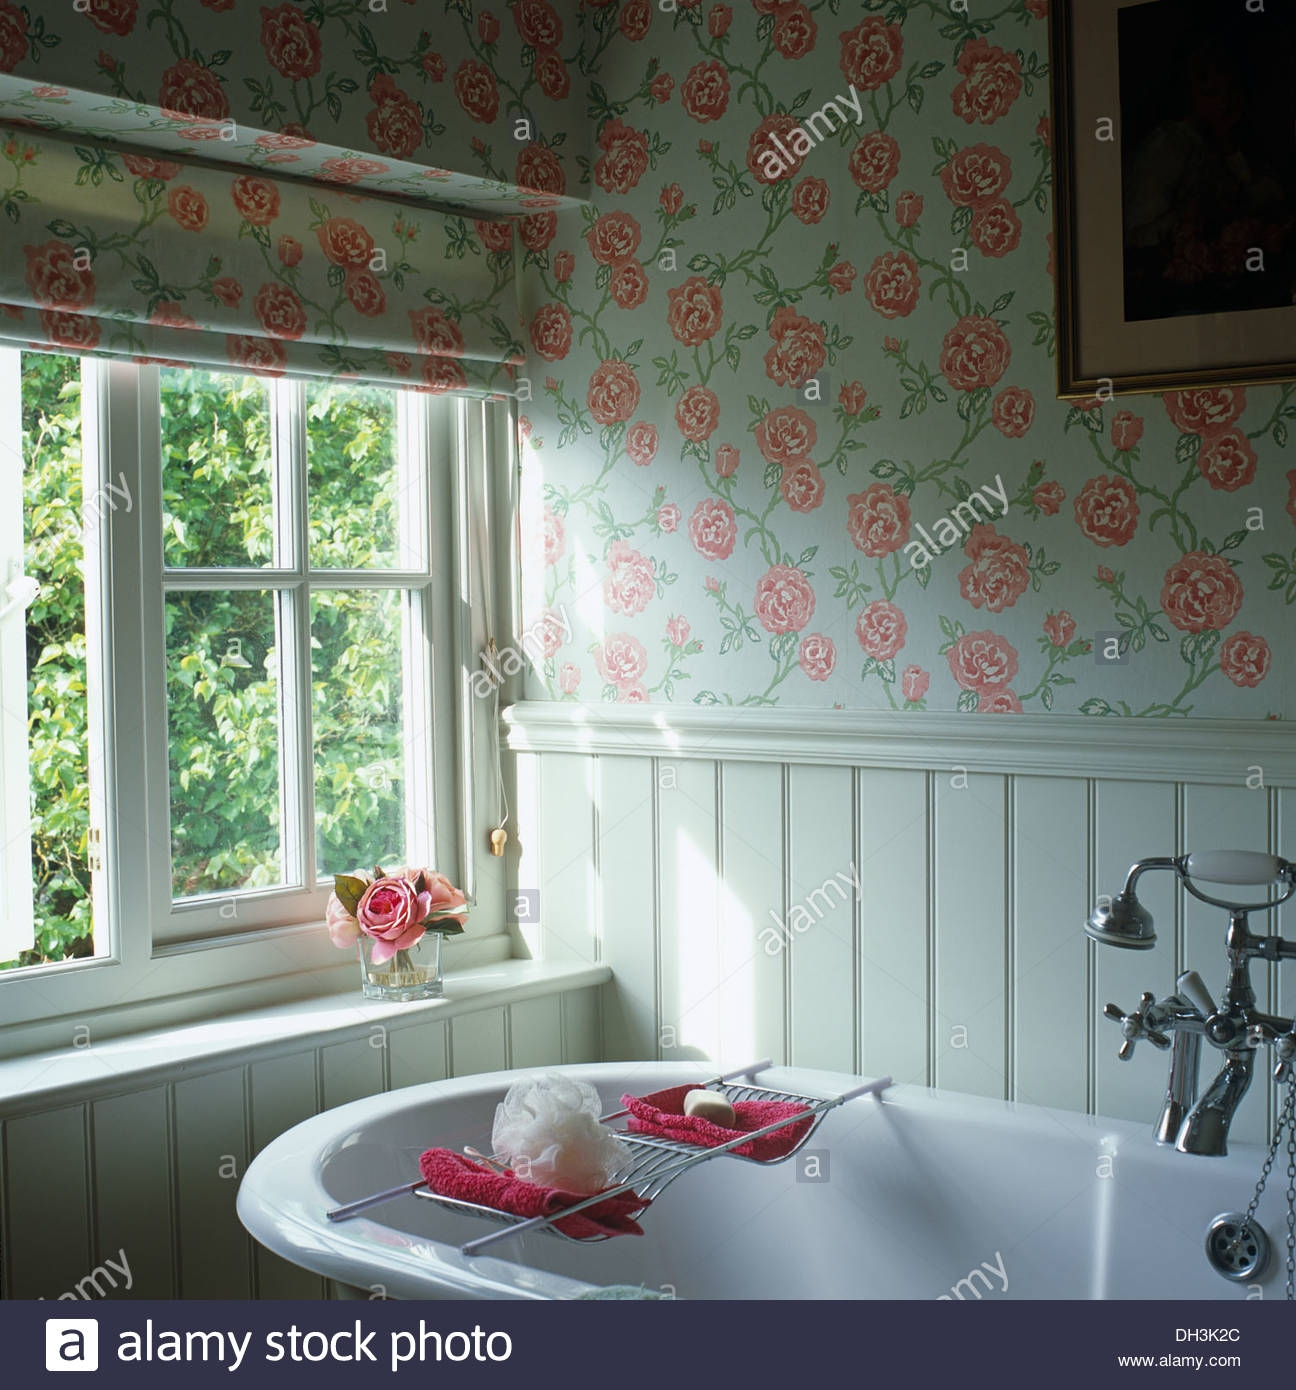 Rose Patterned Roman Blind And Wallpaper In Cottage Bathroom With Within Bathroom Roman Blinds (Image 15 of 15)